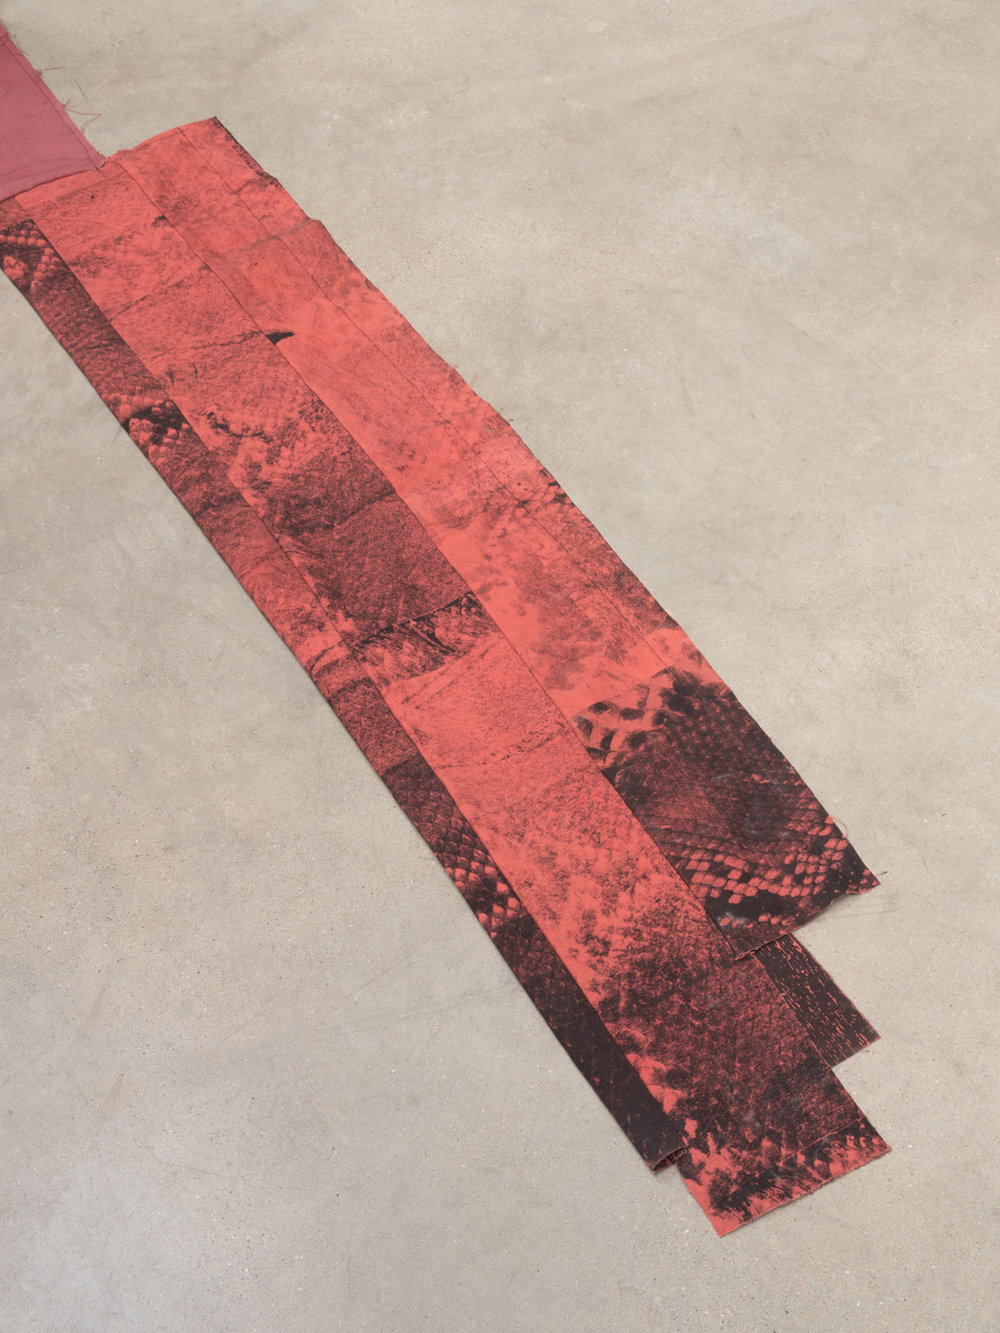 JoseribertoPerez  red tape  (Detail) 2018 Silkscreen acrylic and dye transfer on sewn and dyed canvas and muslin Dimensions variable JoseP004